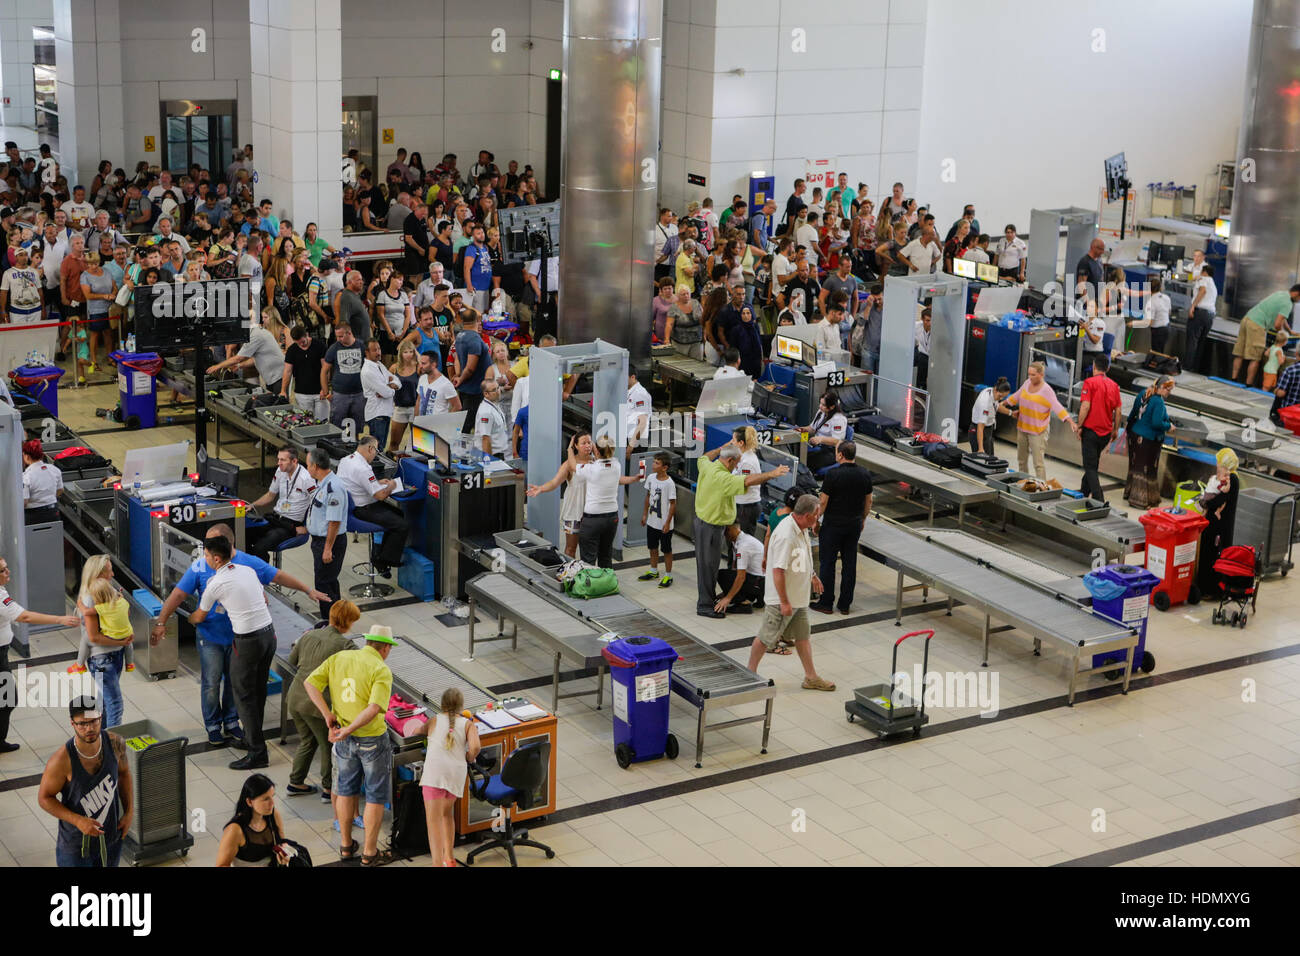 Security and passport control at Antalya International Airport, Turkey. - Stock Image